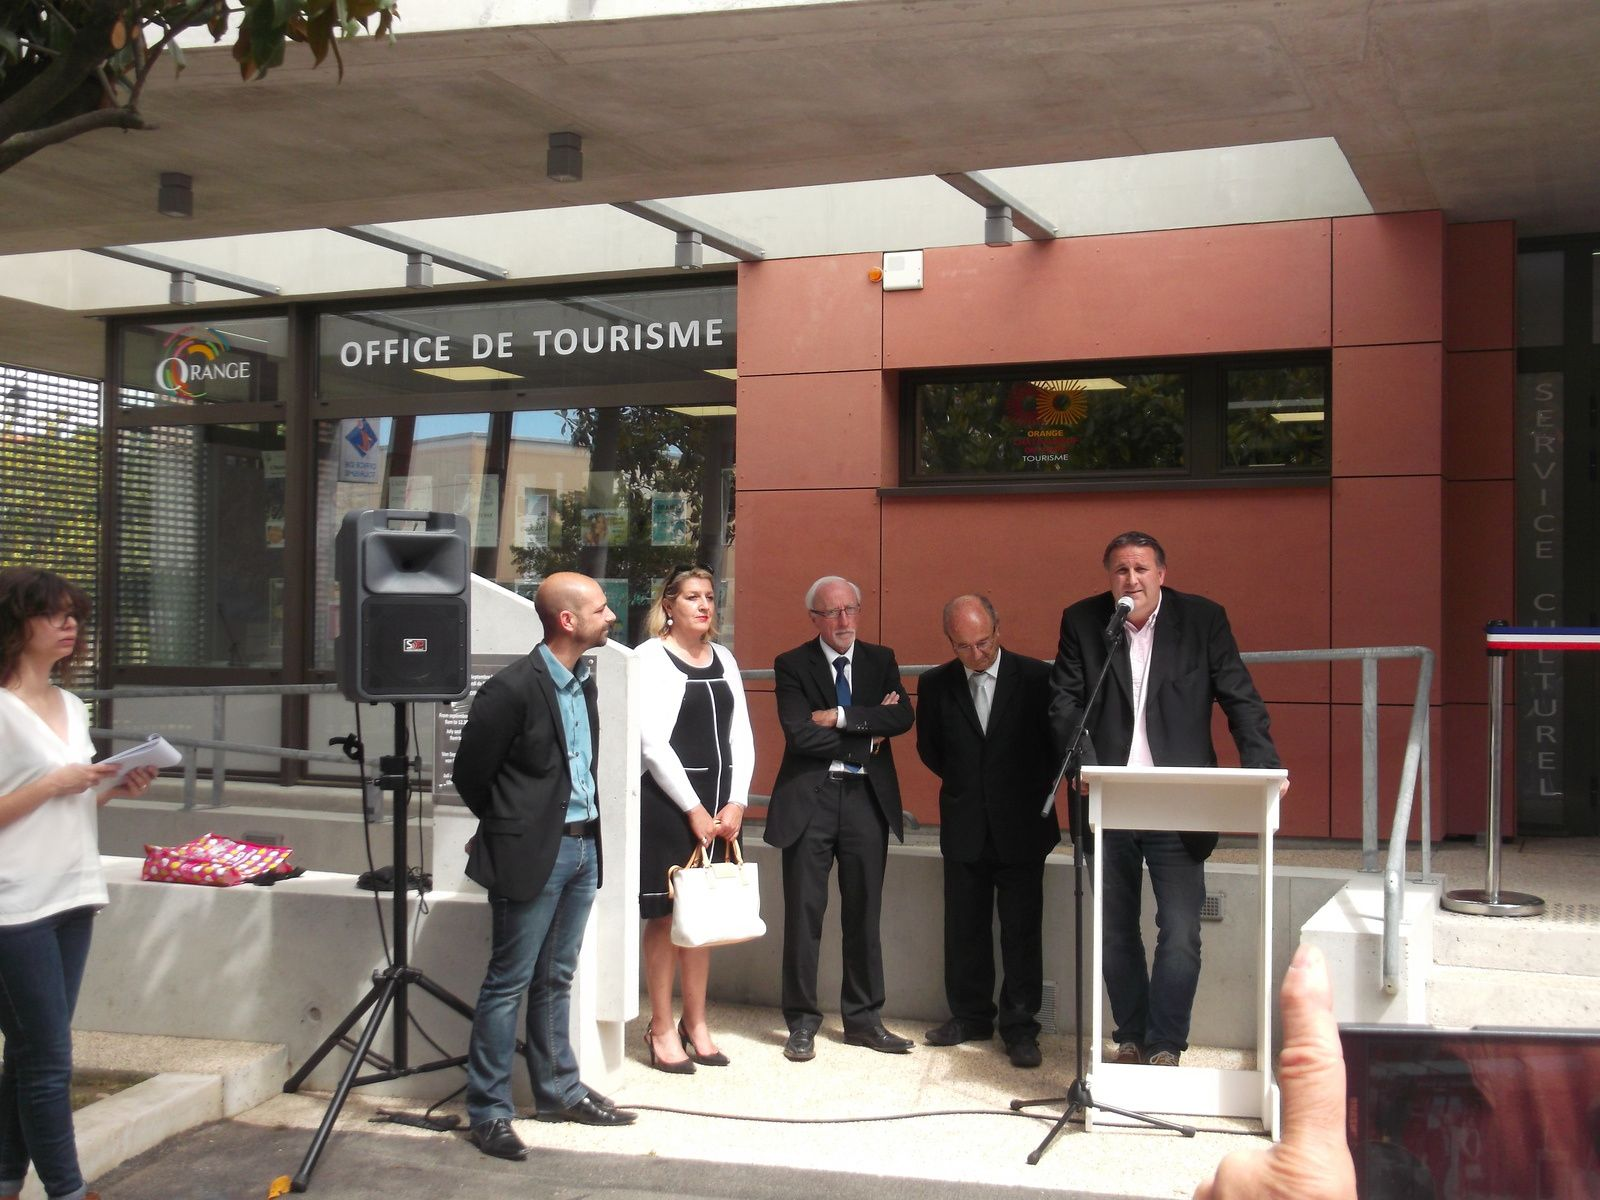 Inauguration de l'office de tourisme intercommunal d'Orange.